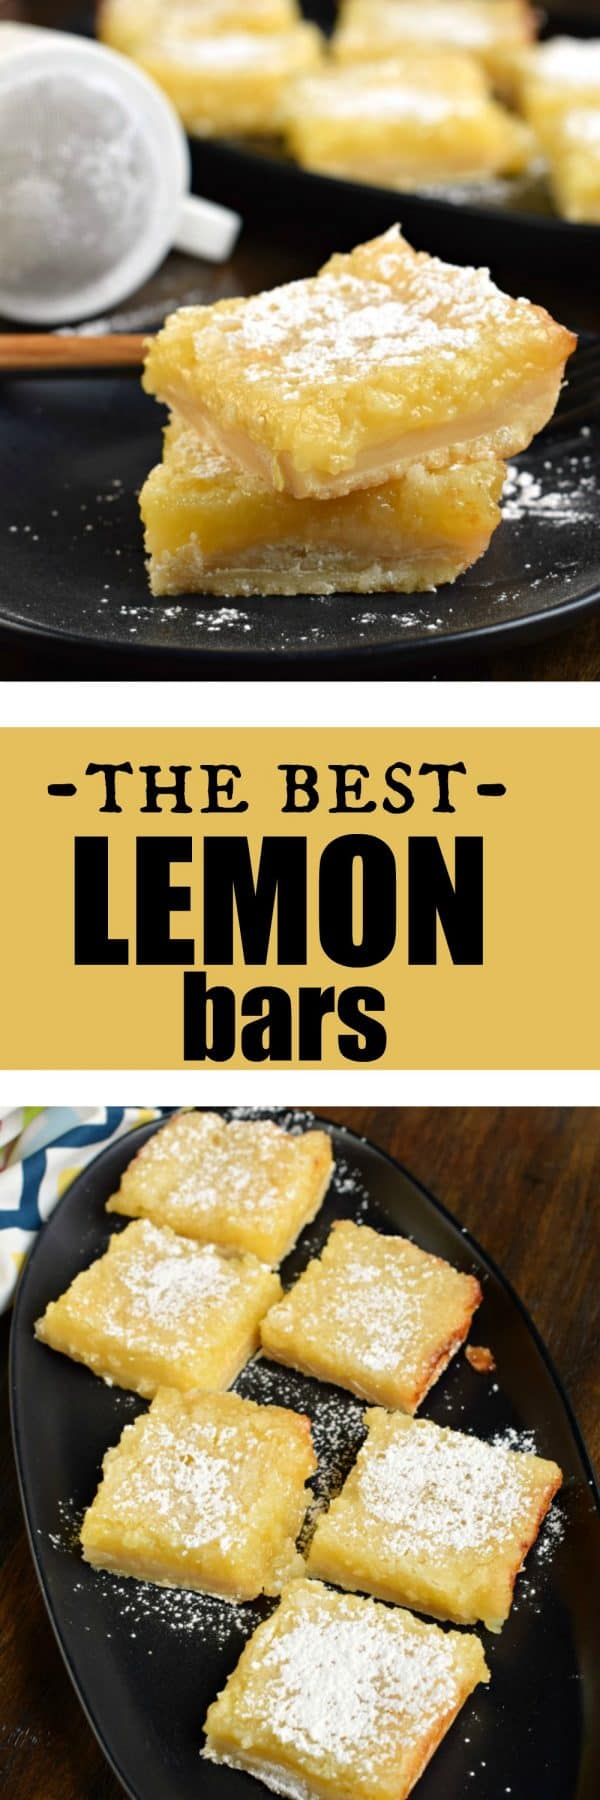 The Best Lemon Bars: shortbread cookie crust, tart lemon filling, lemon glaze, and powdered sugar #lemonbars